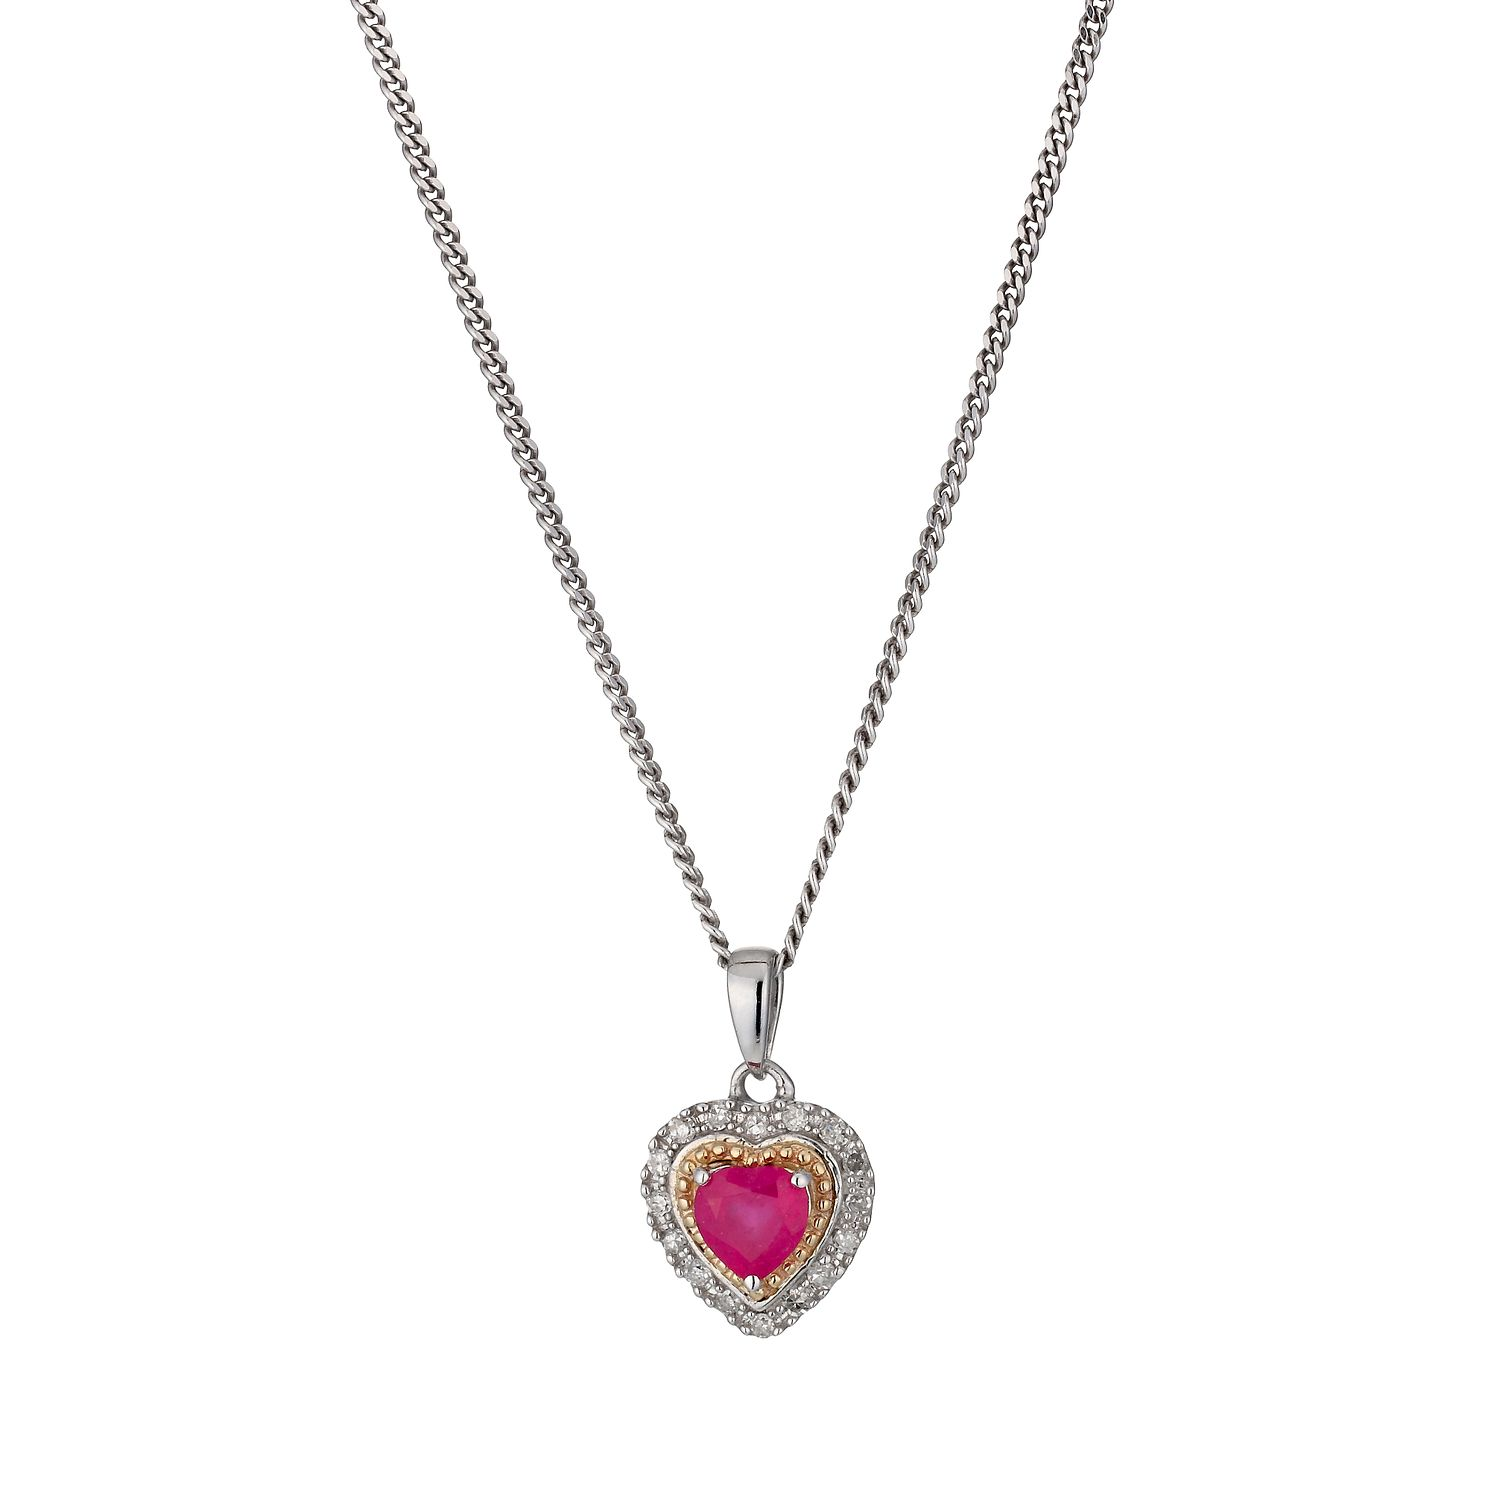 floating necklace products jewelry rubyrg new heart shaped logan ruby hollowell